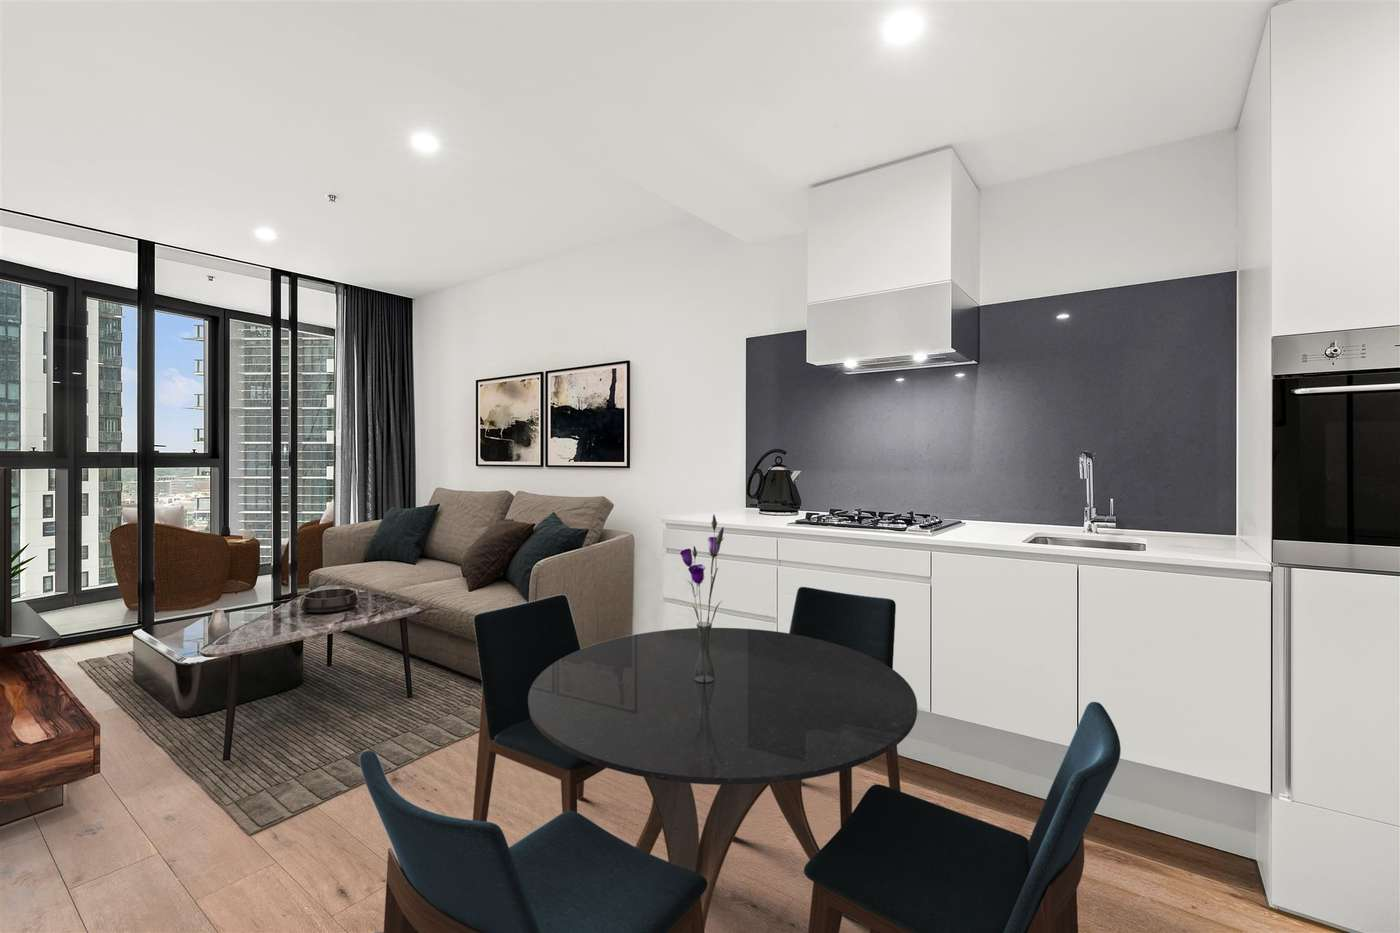 Main view of Homely apartment listing, 1611/105 Clarendon Street, Southbank, VIC 3006